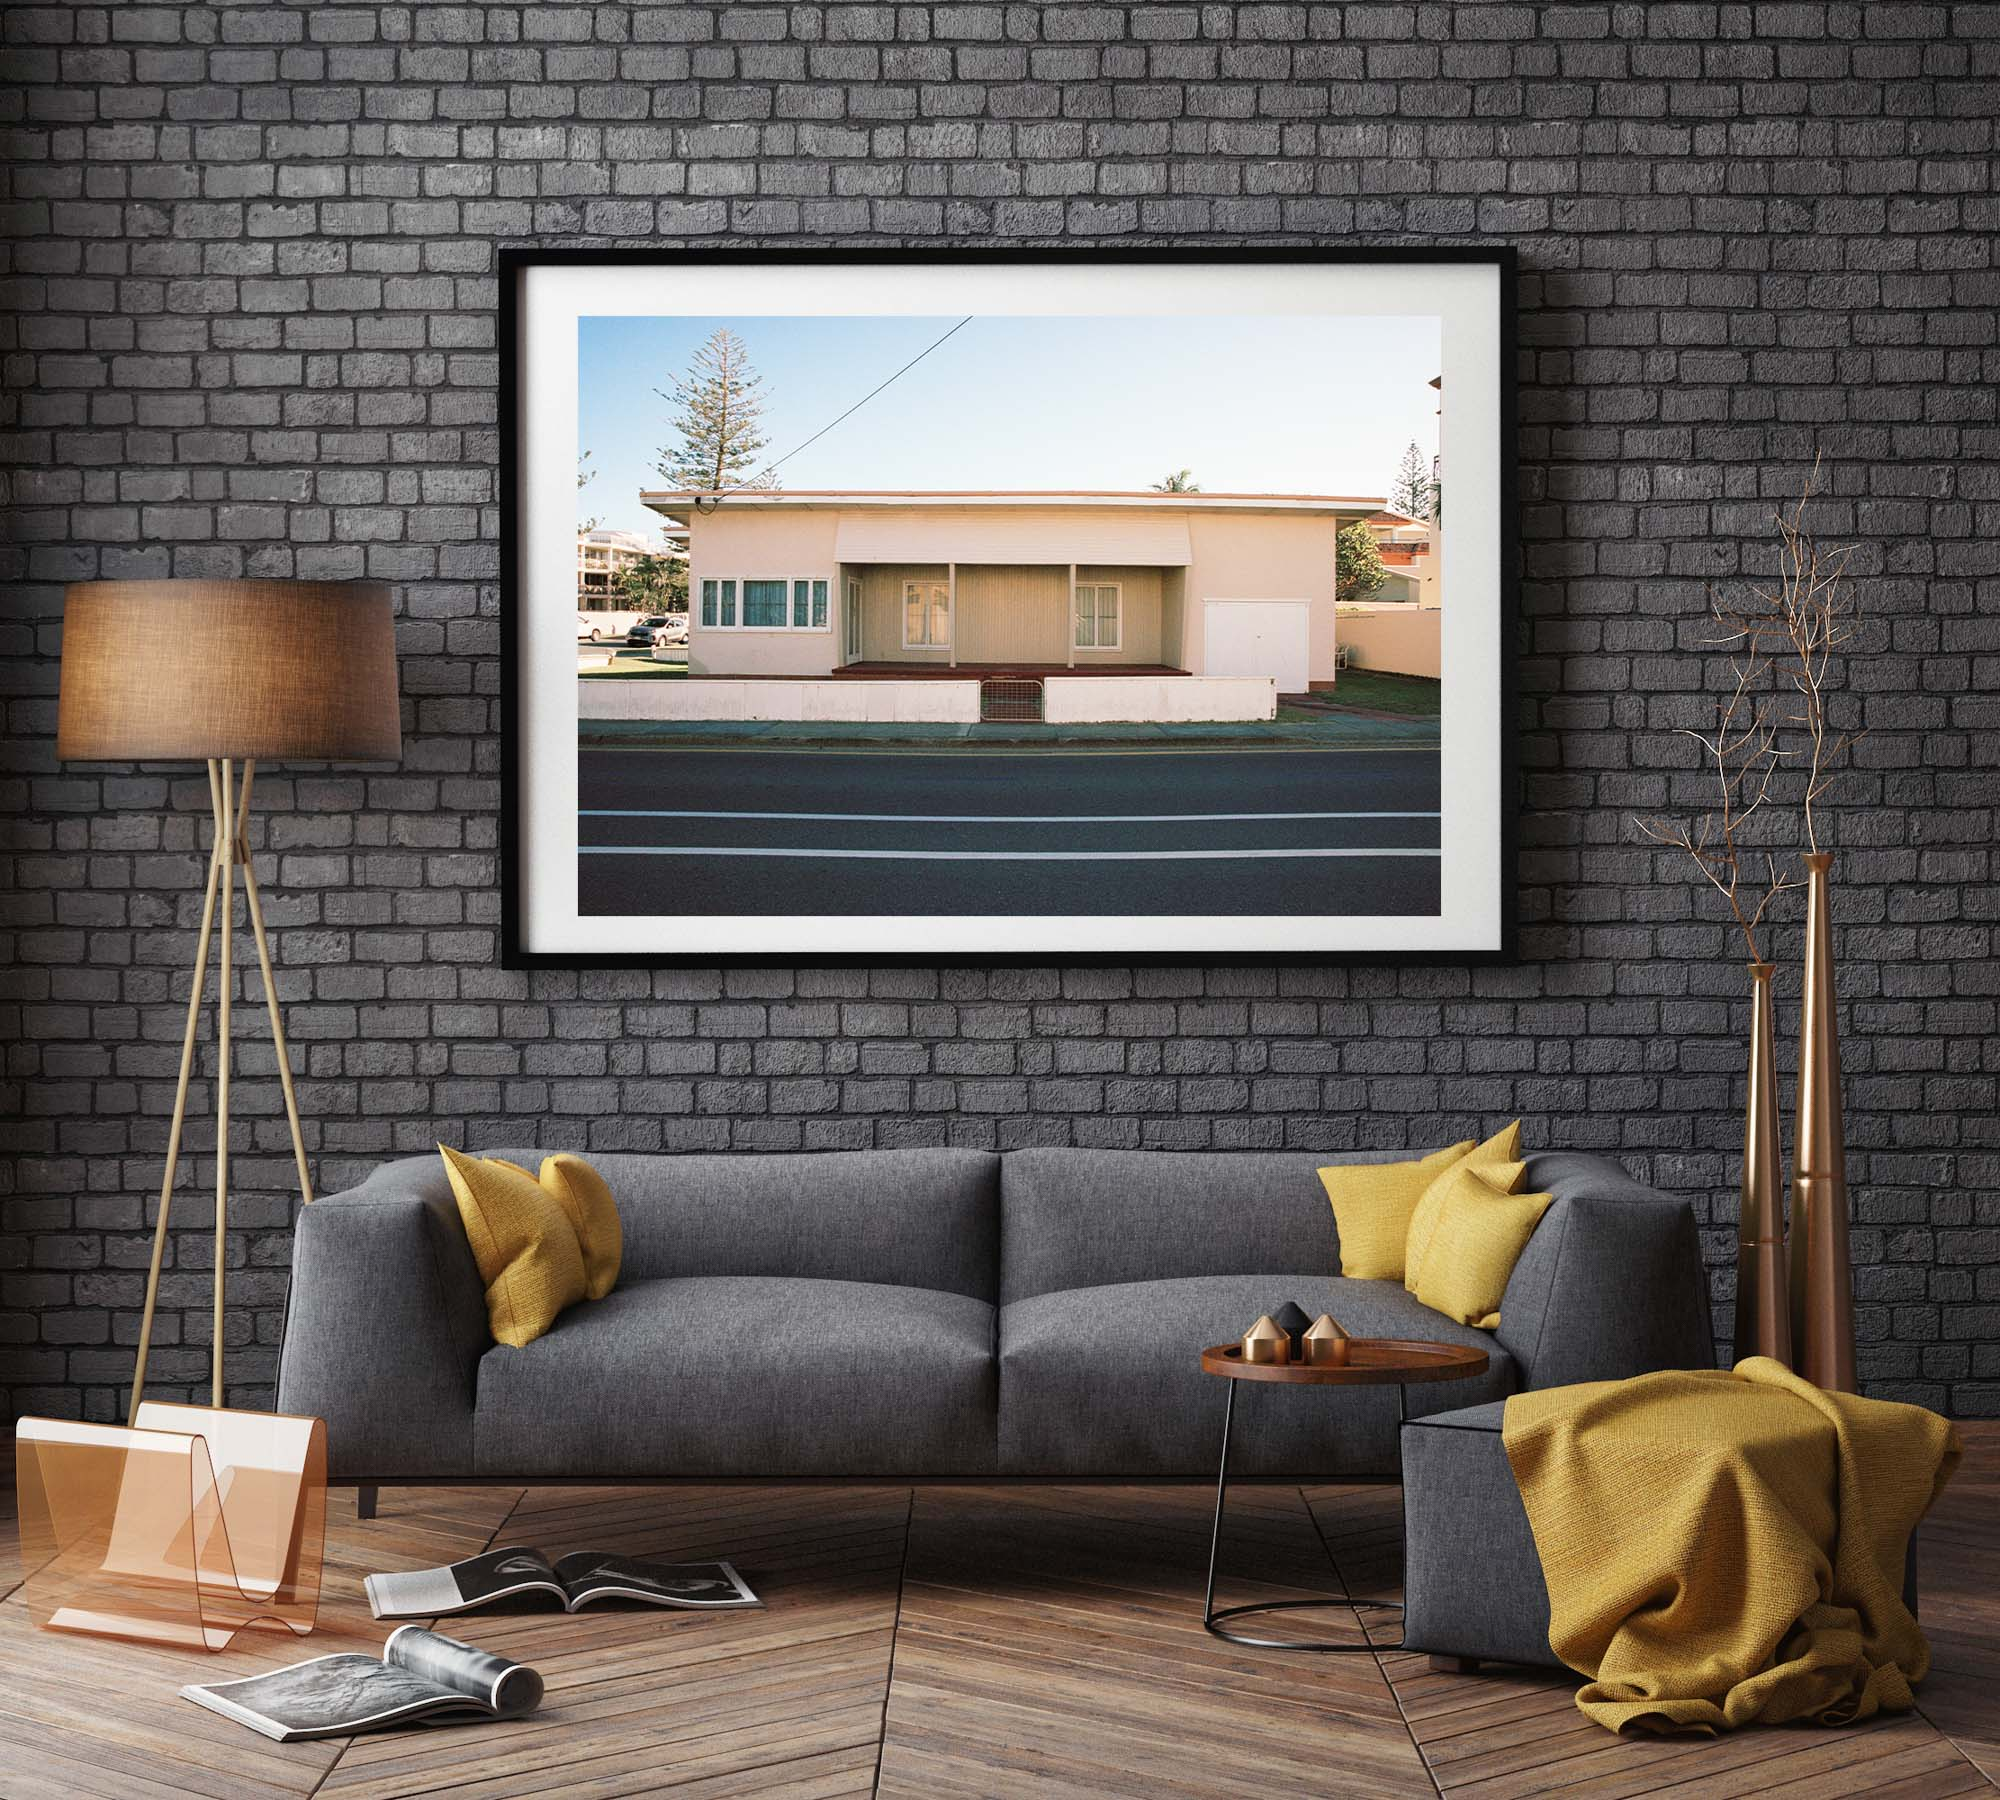 """A 1950's wood panelled house, painted cream colour with an Art Deco vintage style on a street"". Artwork, Prints, wallart, GoldCoast Queensland Australia, Photographic prints, Ocean Beach, Framed artwork, Beach Posters   Film photography, Vintage photo style,  Interior design, Film photography Pictures sun & surf, photography art"